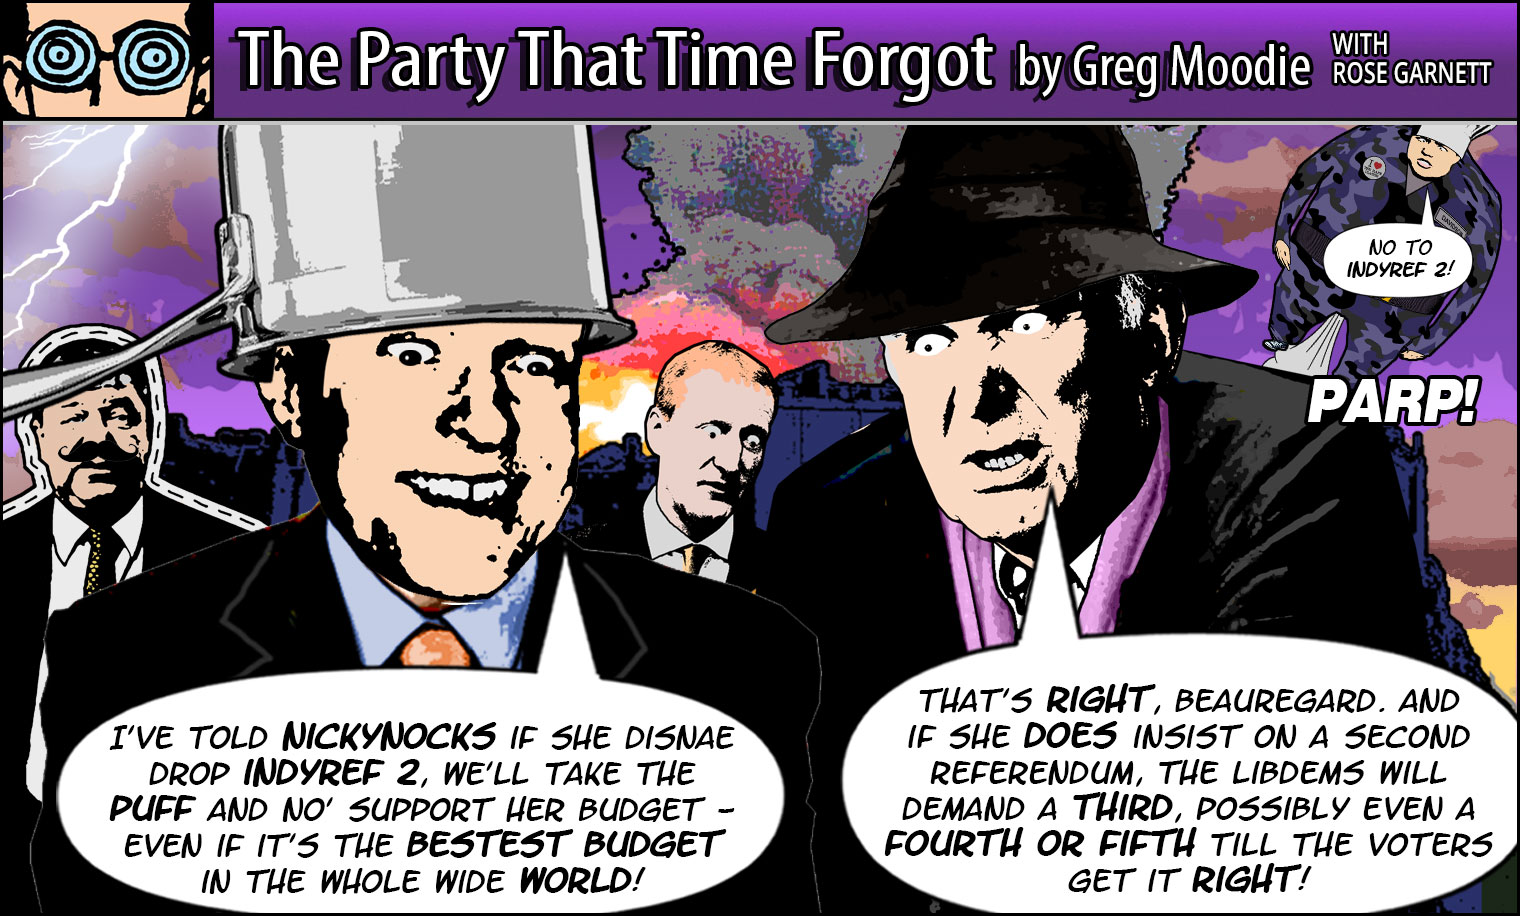 The Party That Time Forgot